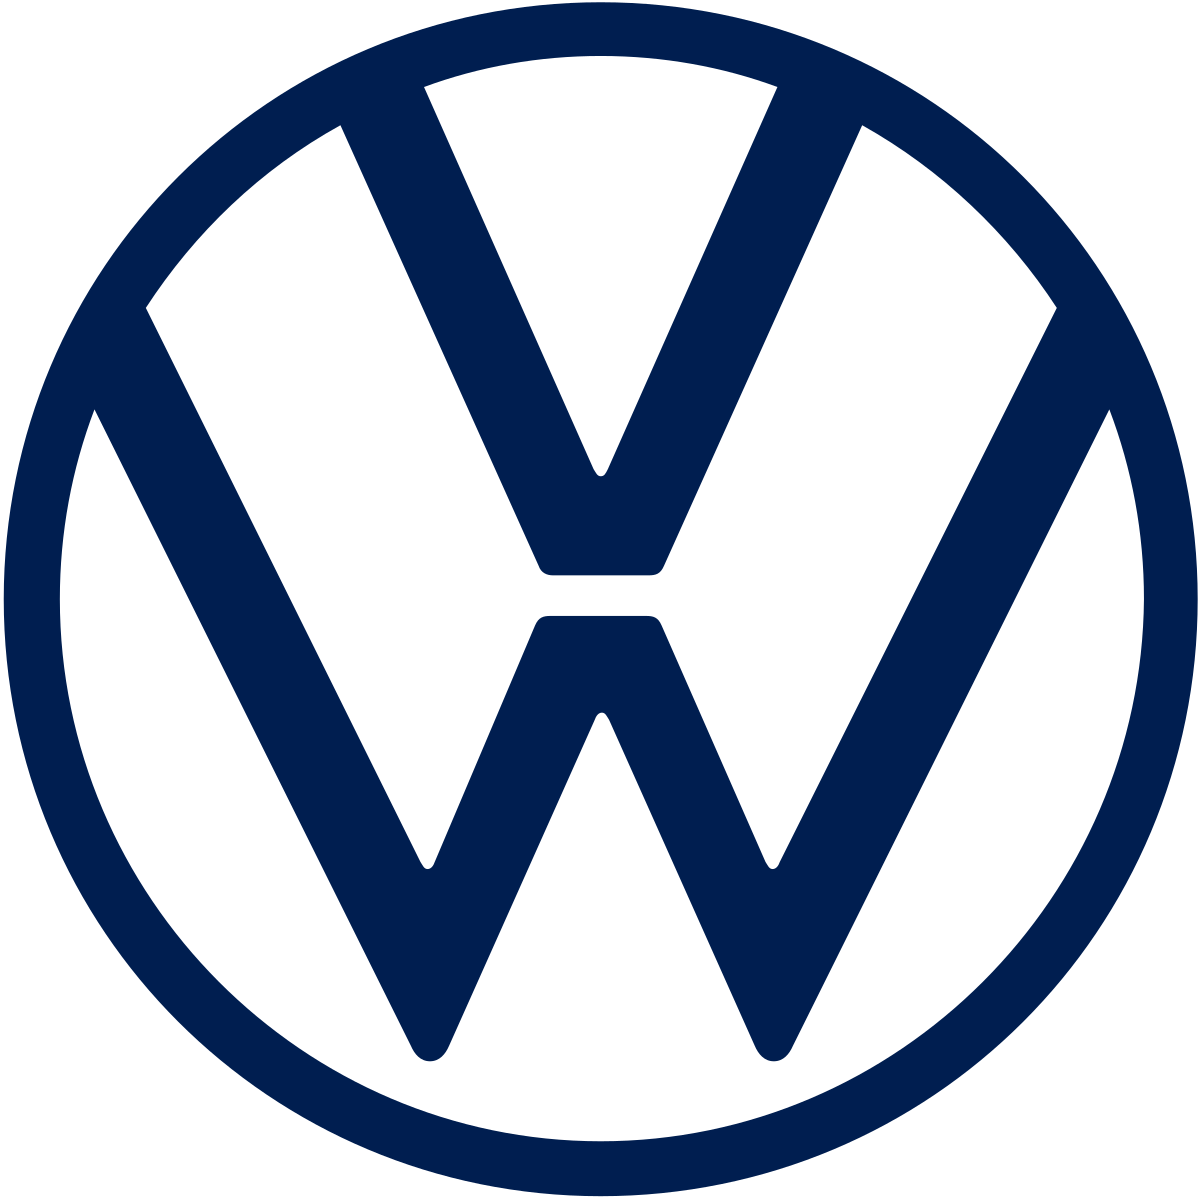 Blauweiss Garage AG - For your dream car. vw-ID11-1.png?v=1586934722